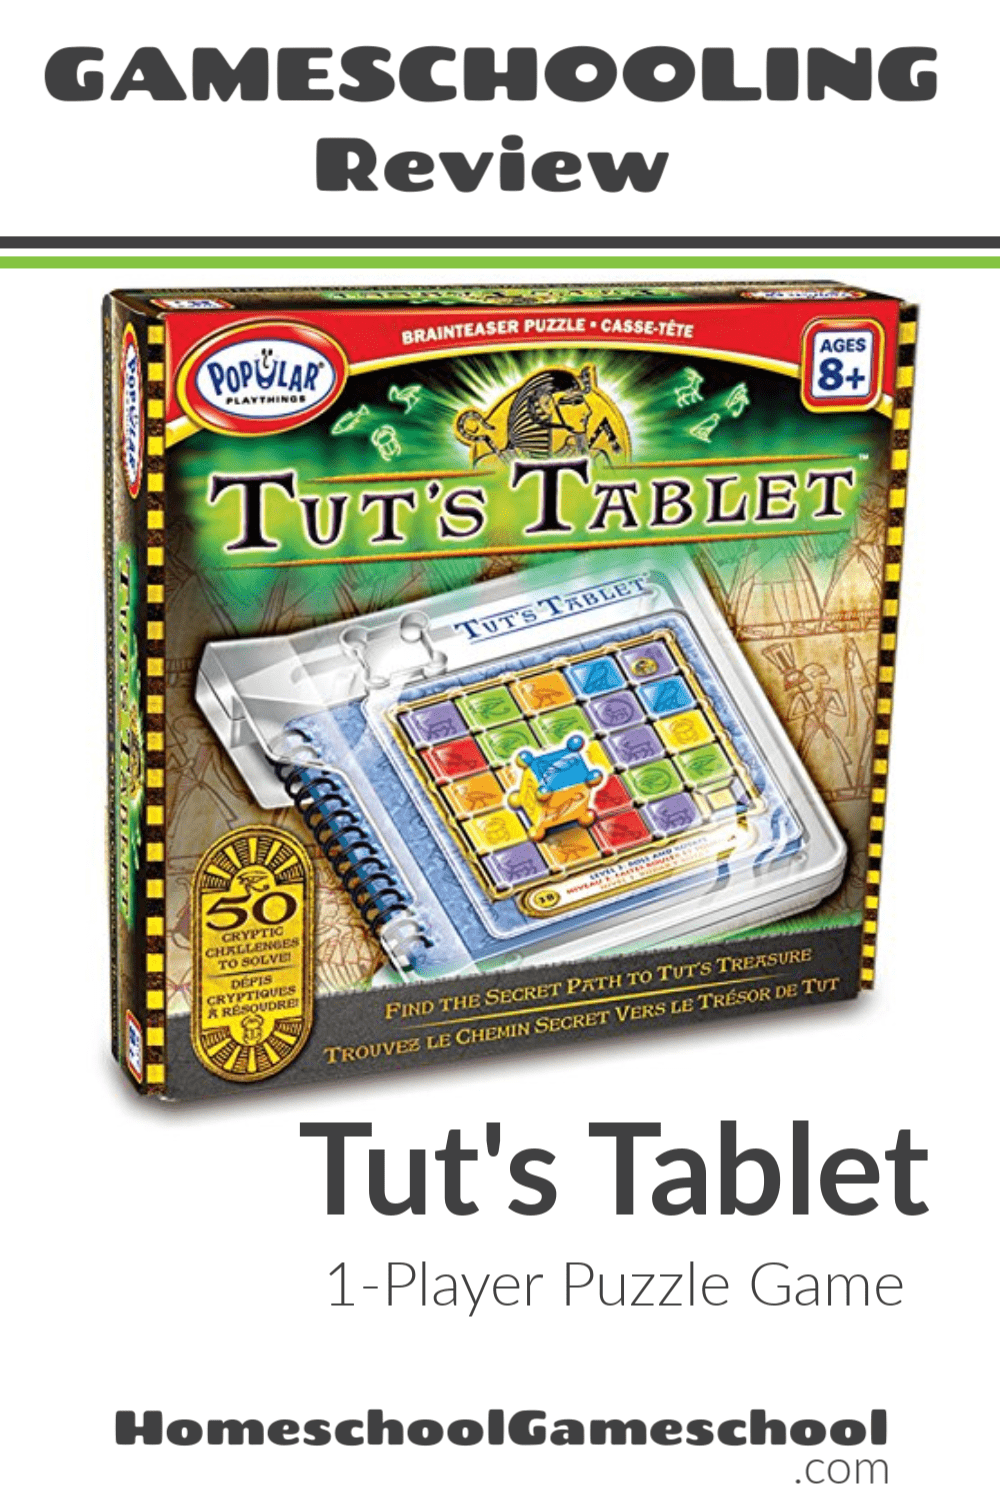 Tut's Tablet Review